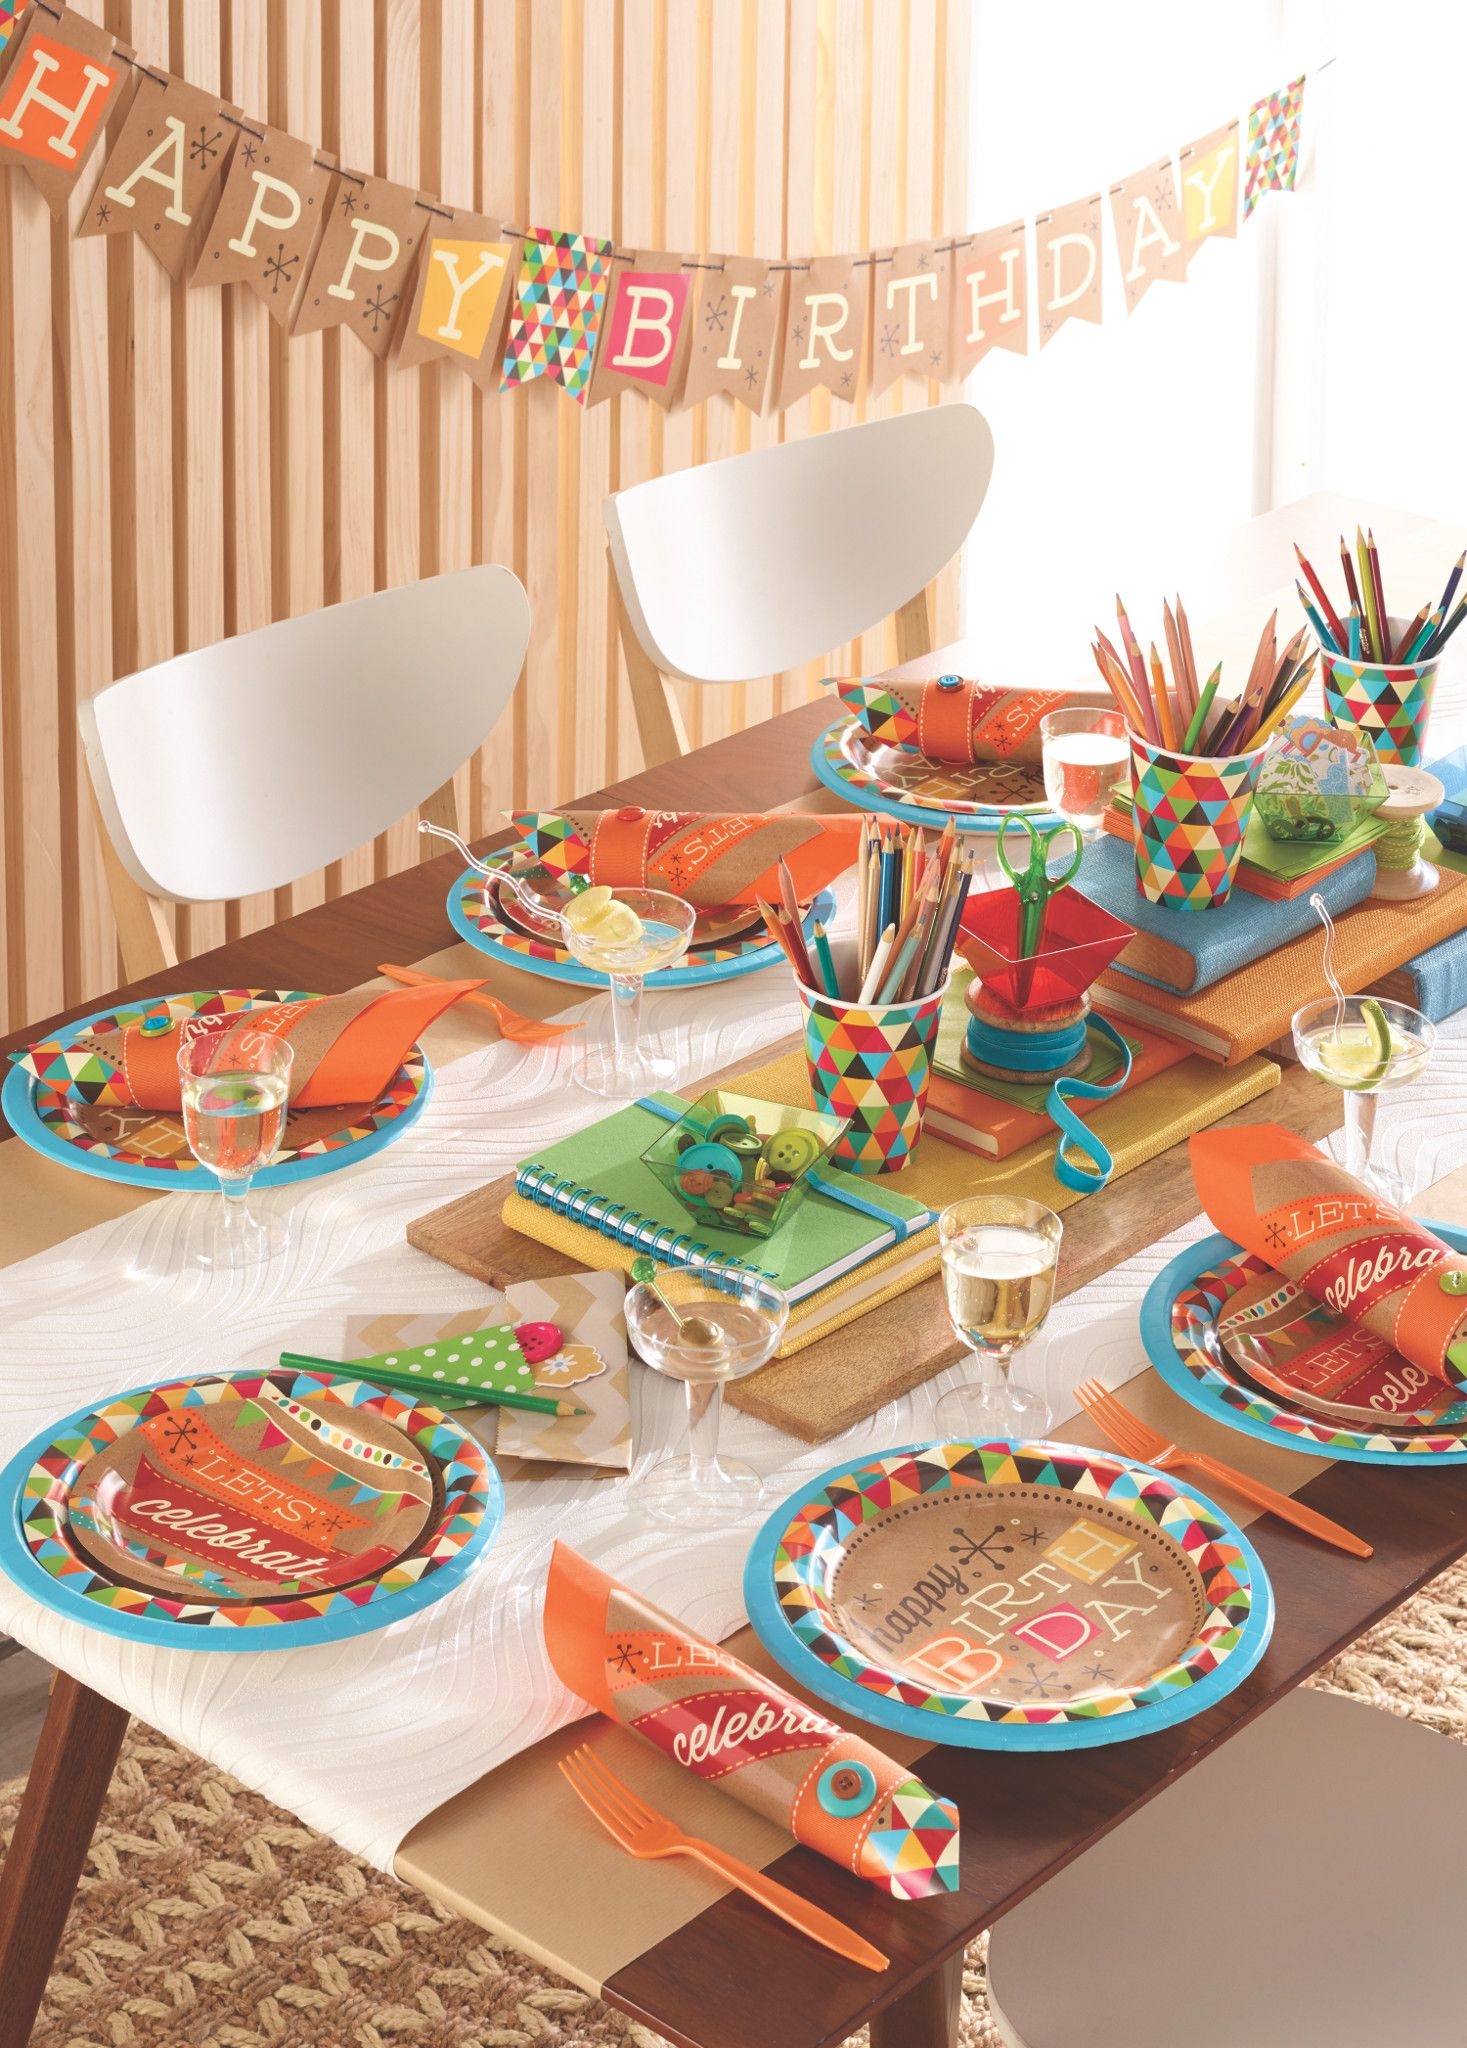 Adult birthday table decorations - Adult Birthday Party Supplies